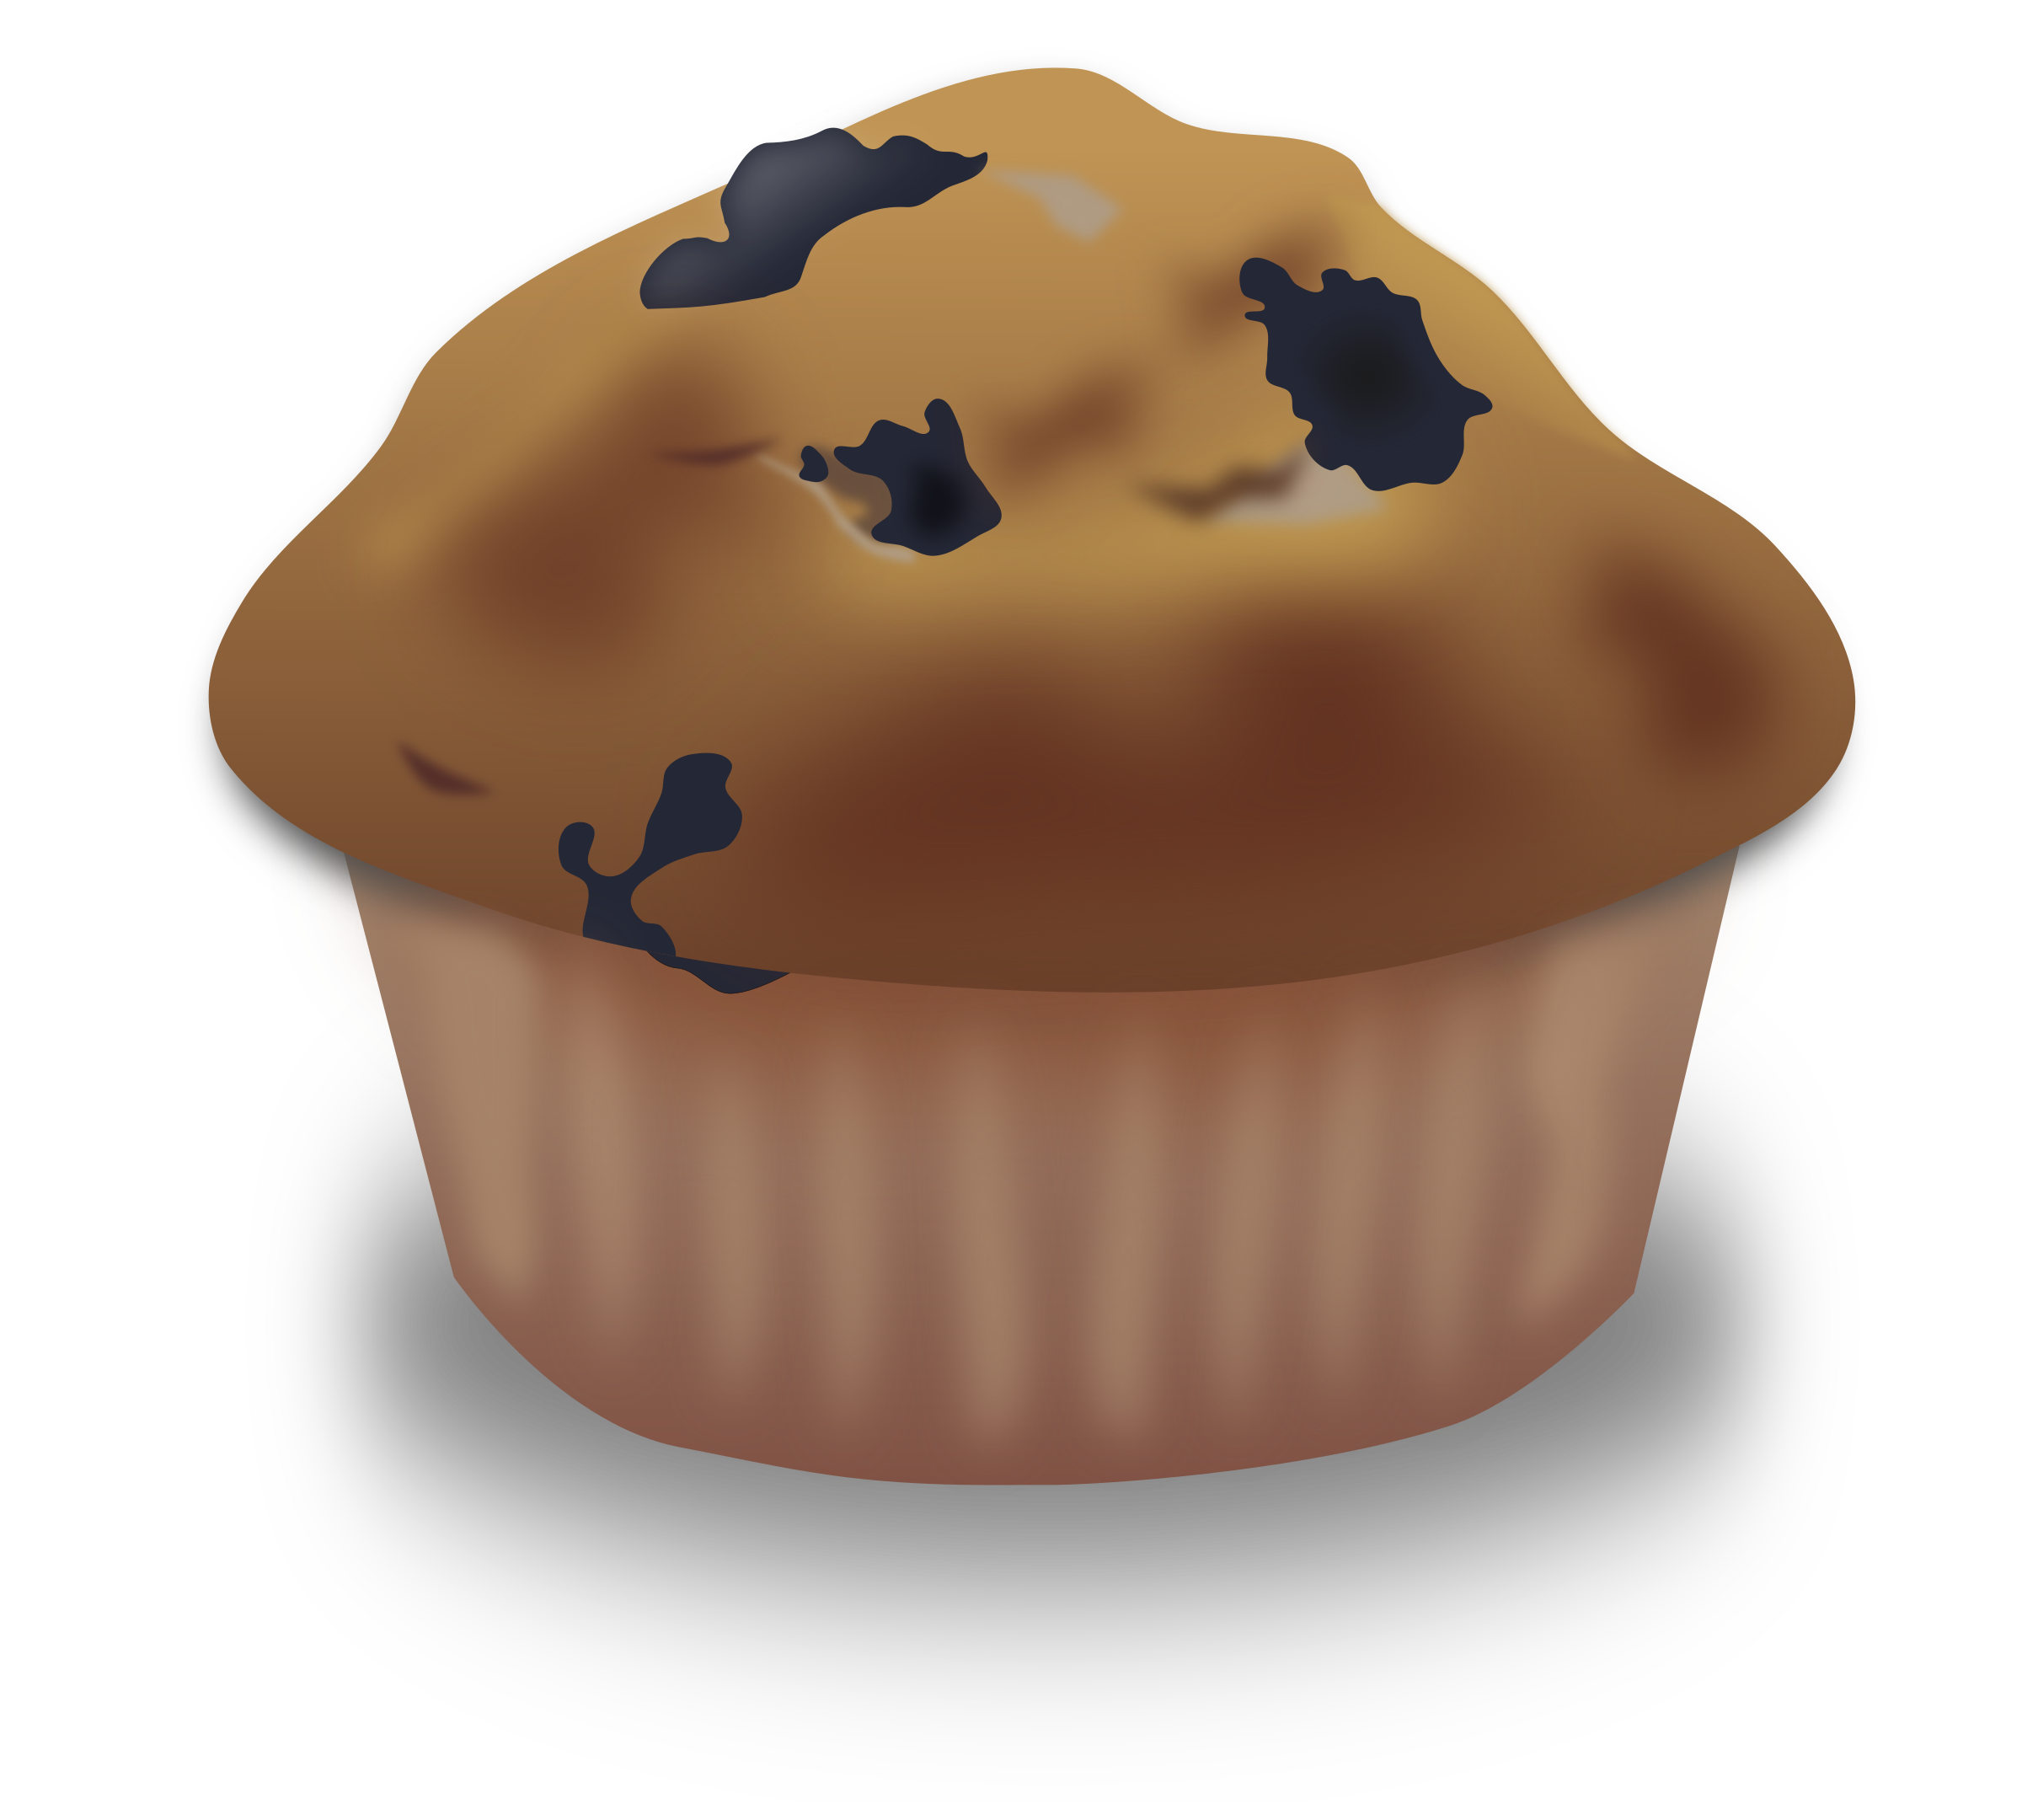 Blueberry Muffin clipart transparent Clipart Blueberry Muffin Blueberry Muffin